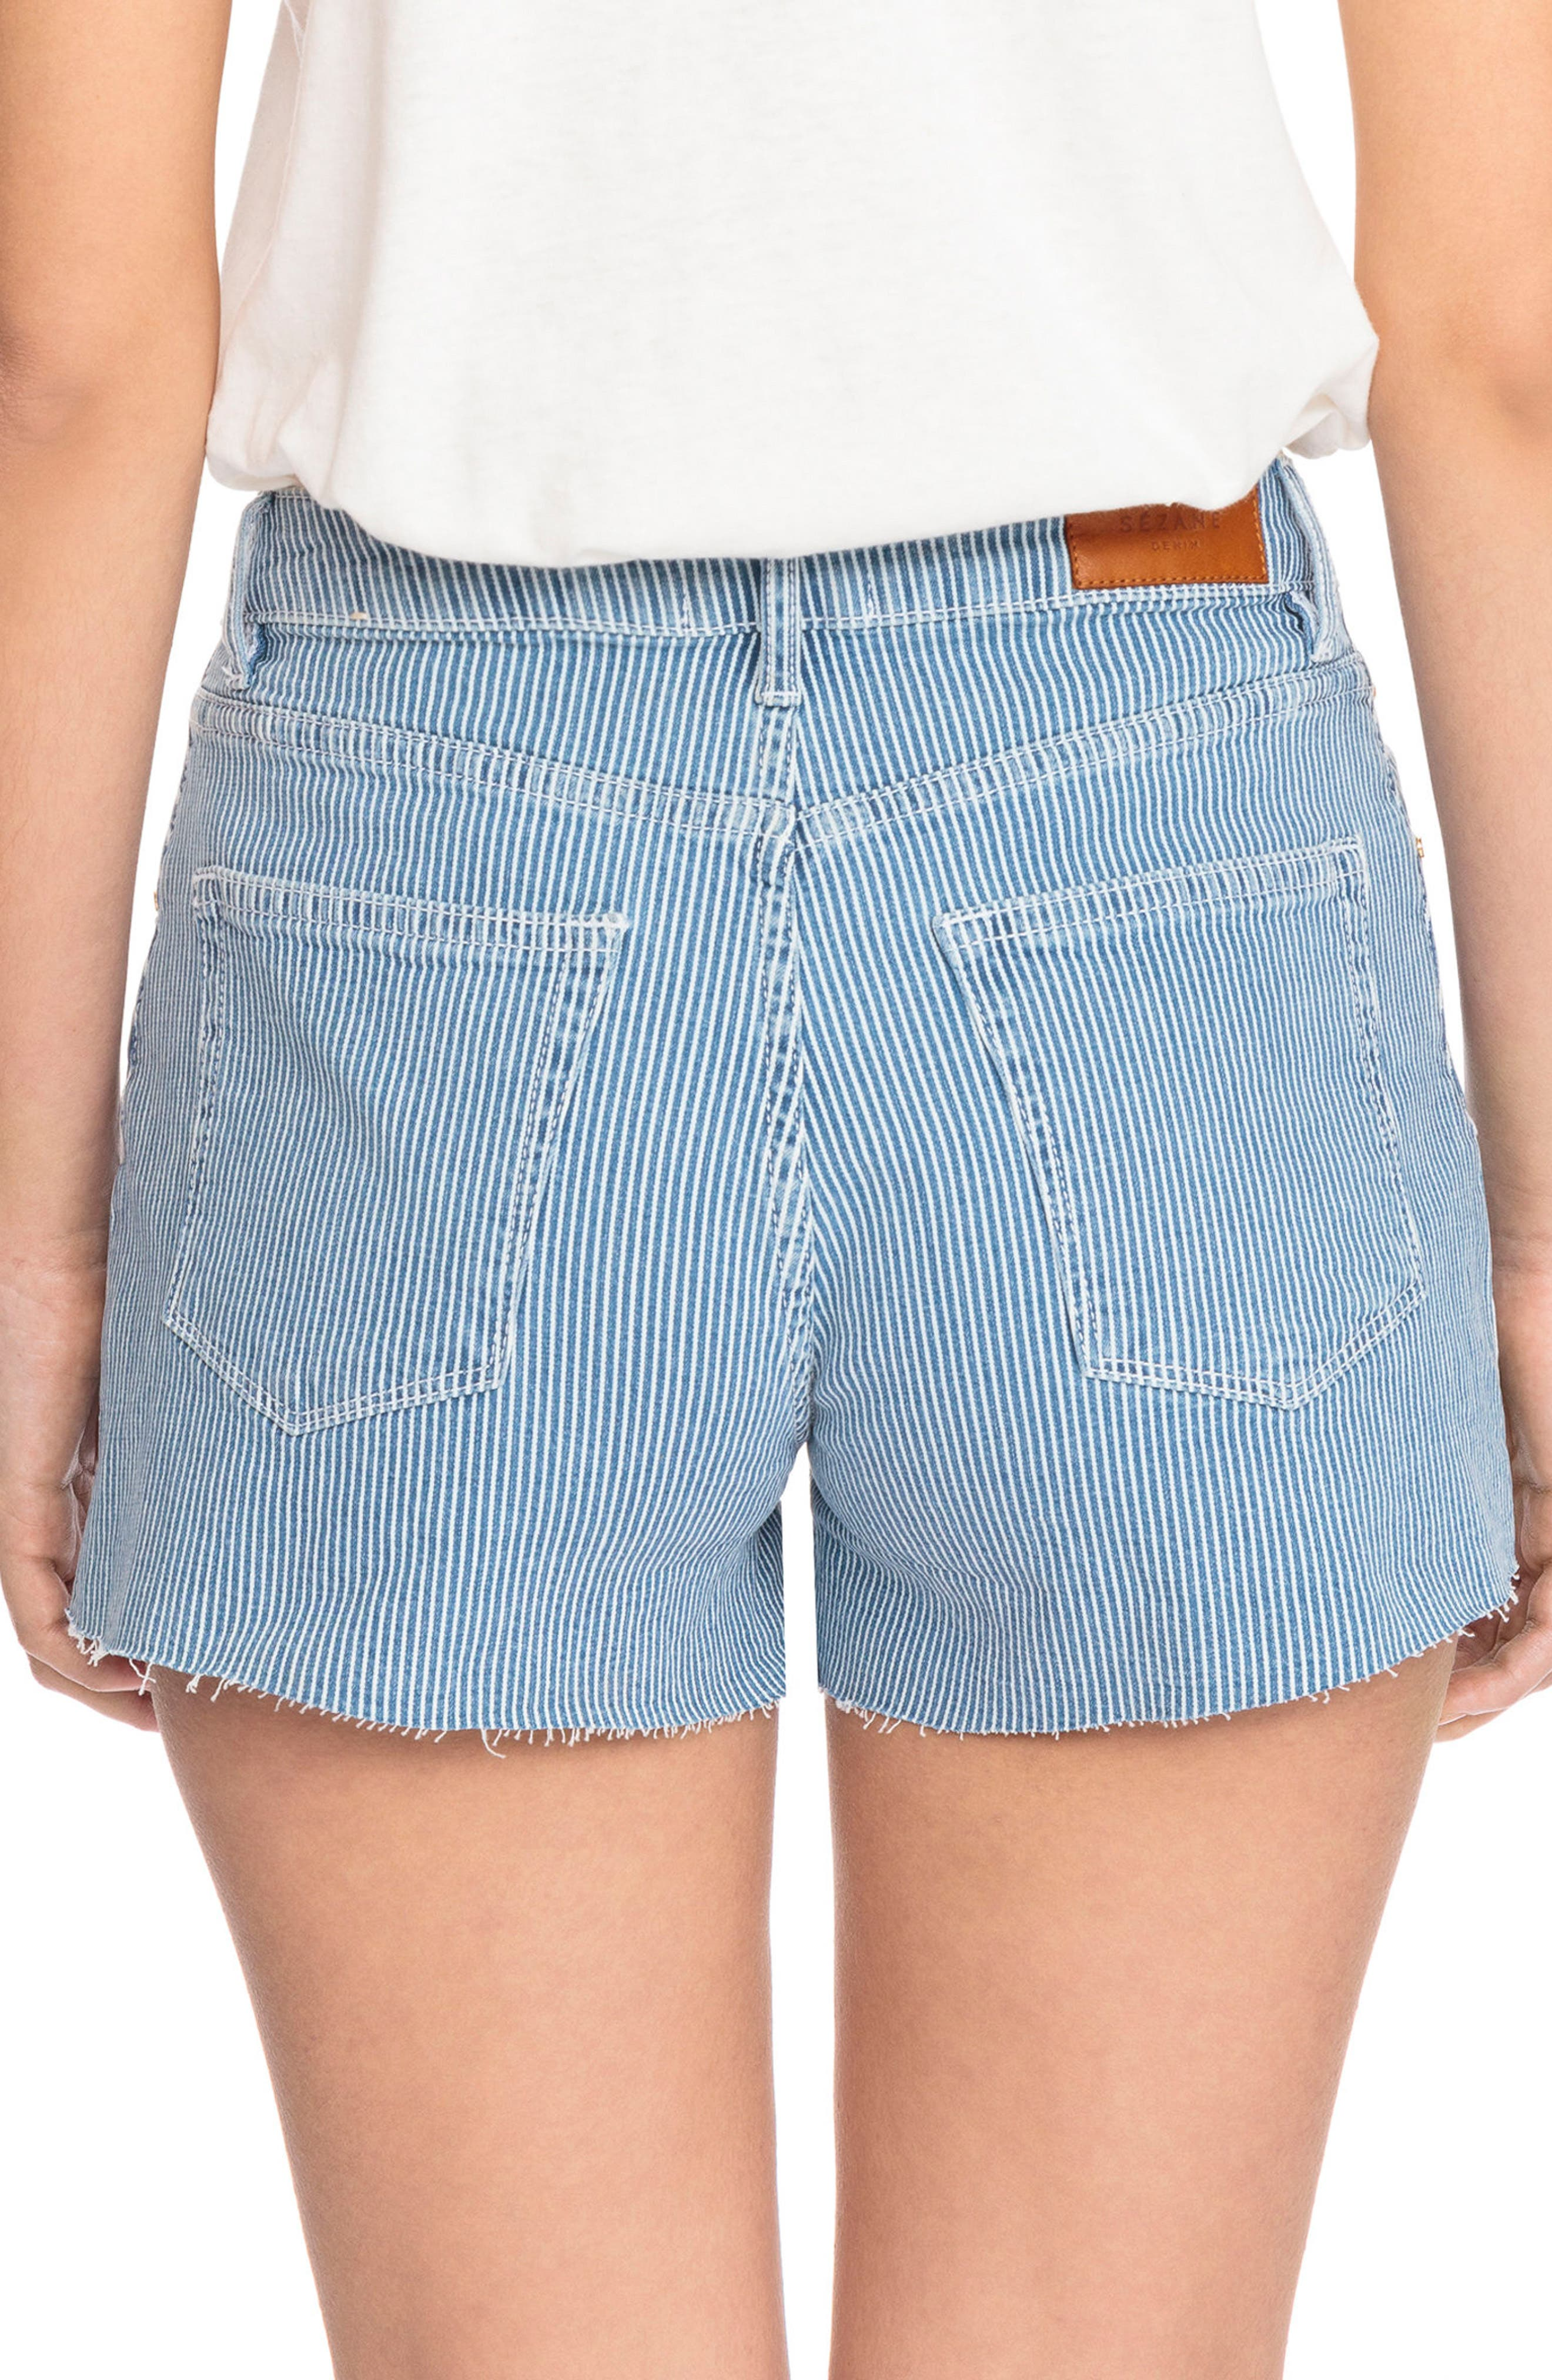 1968 Stripe Cutoff Denim Shorts,                             Alternate thumbnail 2, color,                             Off White And Blue Stripes